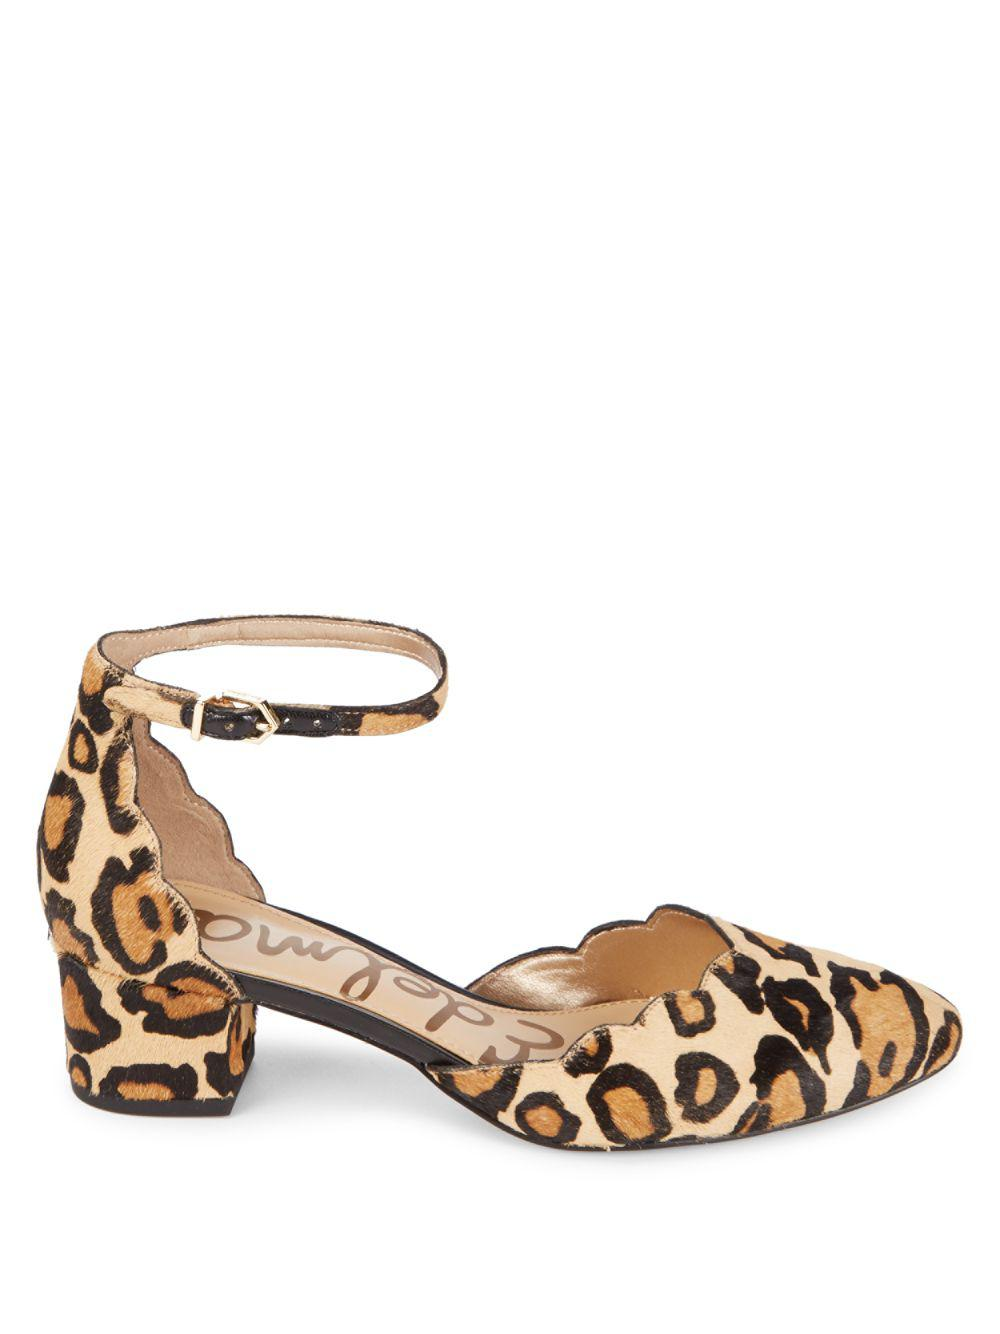 92664a0309e7 ... Lyst - Sam Edelman Lara Leather Pumps With Fur in Natural promo codes  30baa f47bd ...